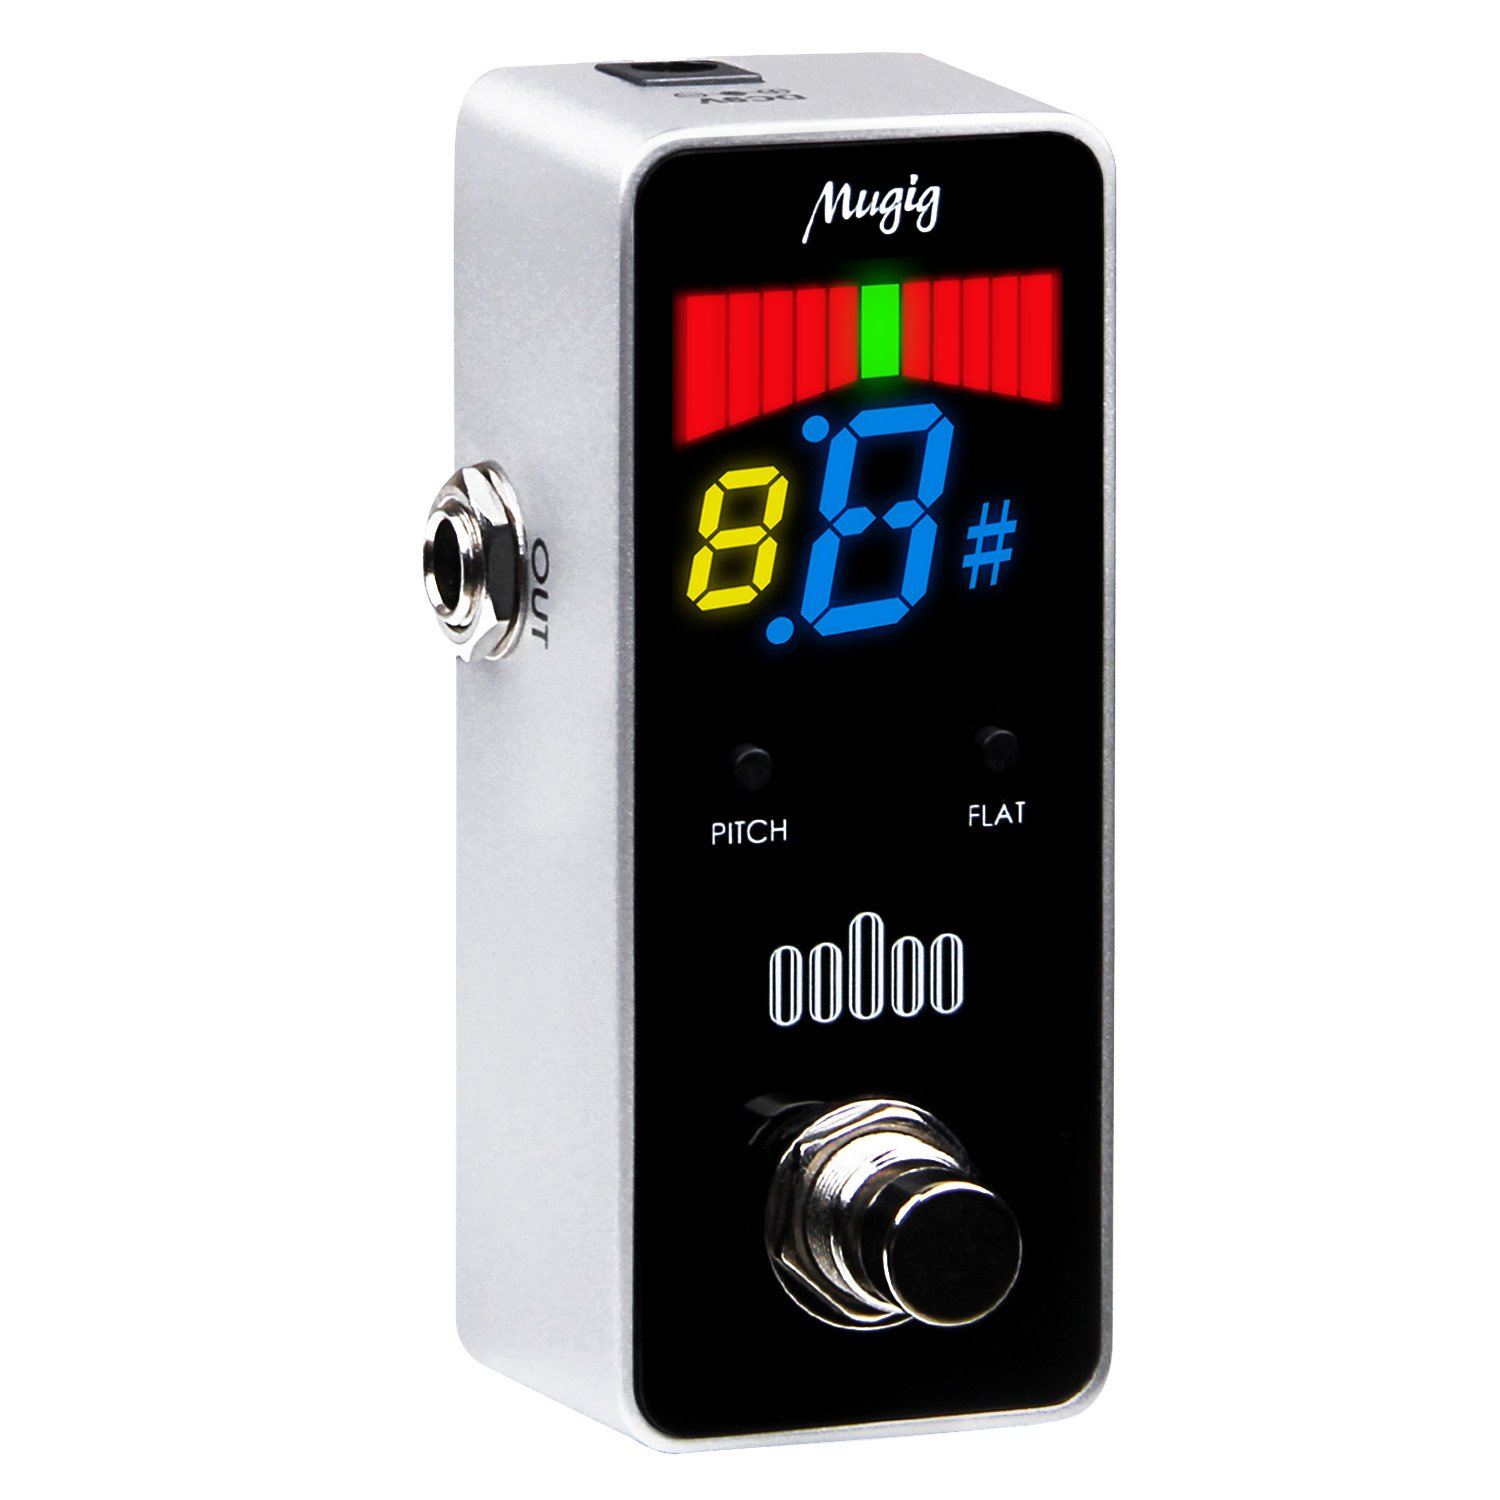 Tuner Pedal for Guitar and Bass - Mini - Chromatic - with Pitch Calibration and Flat Tuning by Mugig